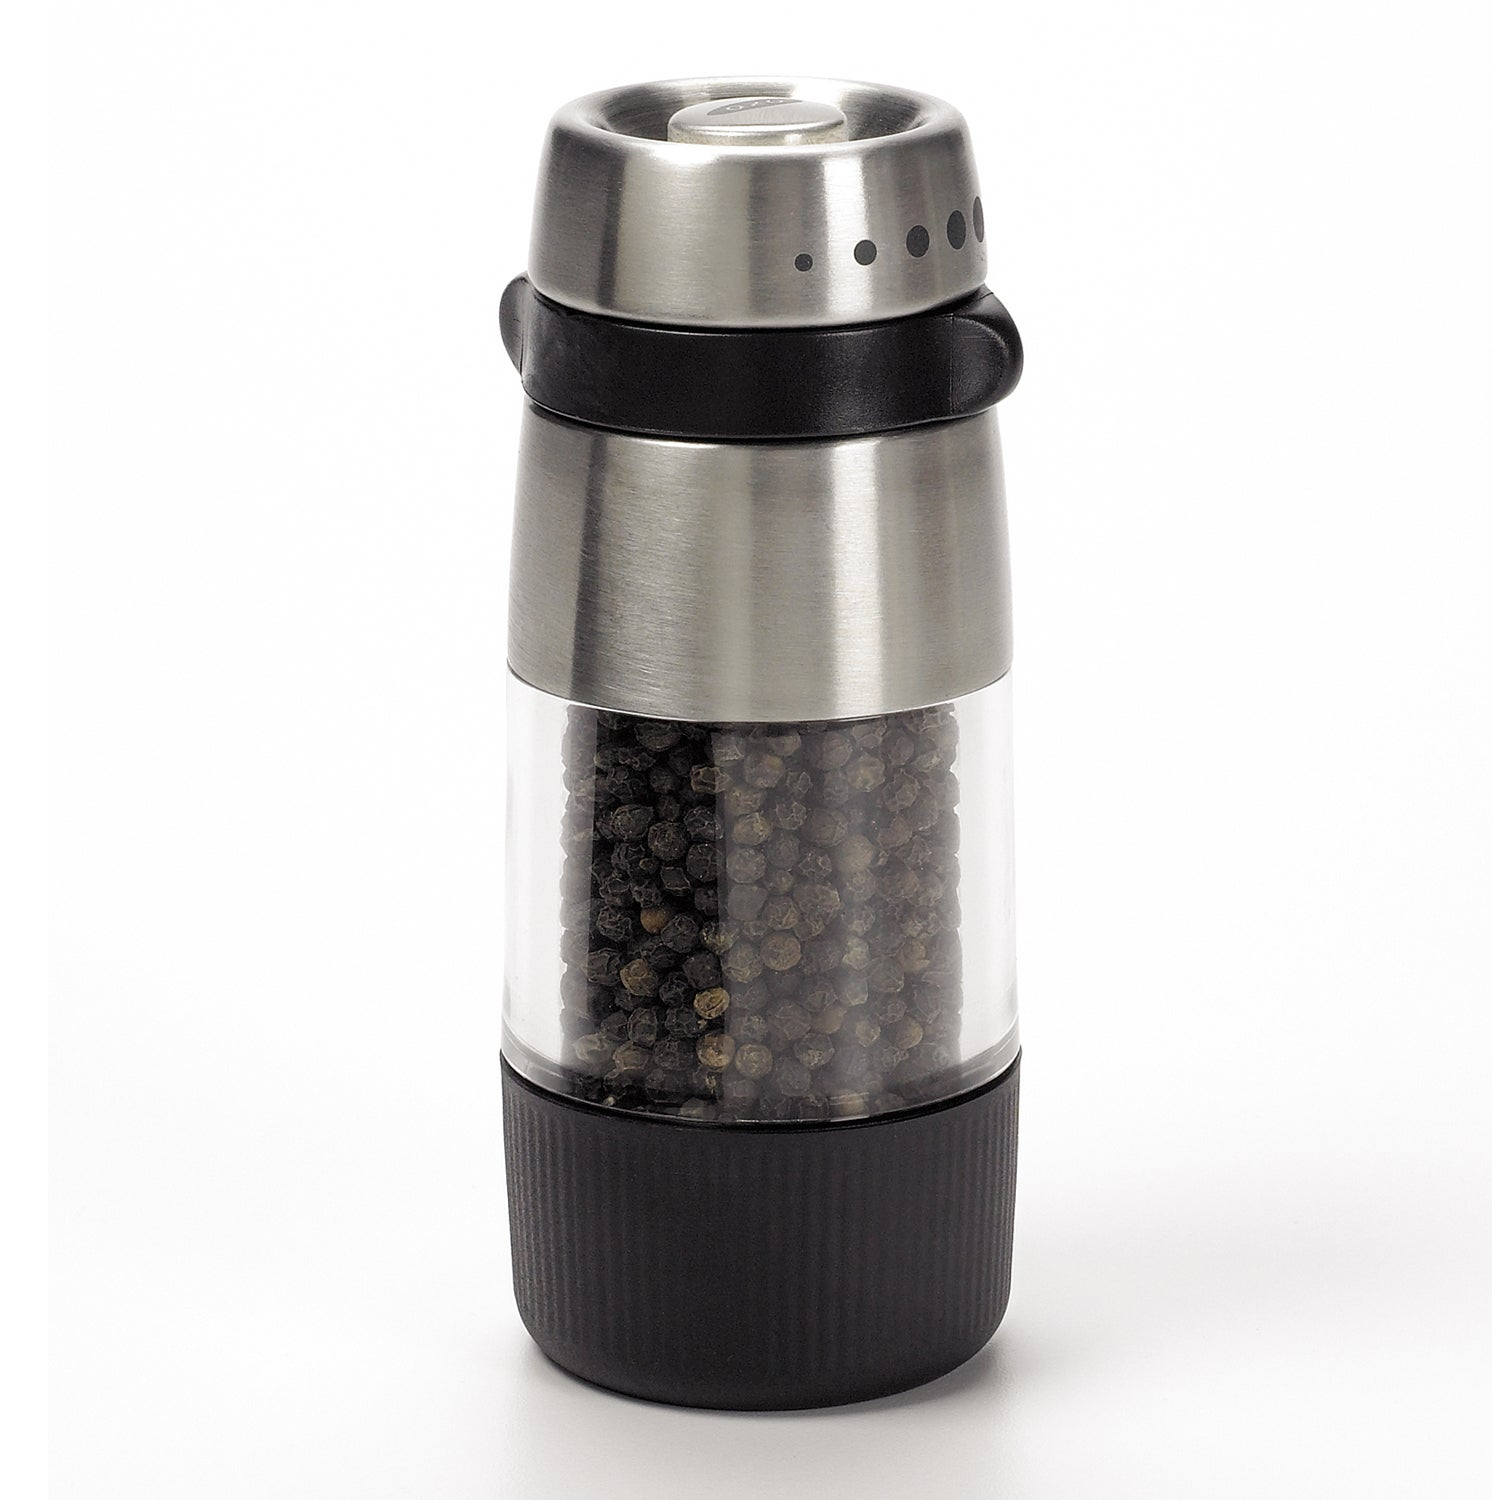 OXO Good Grips Steel Pepper Grinder